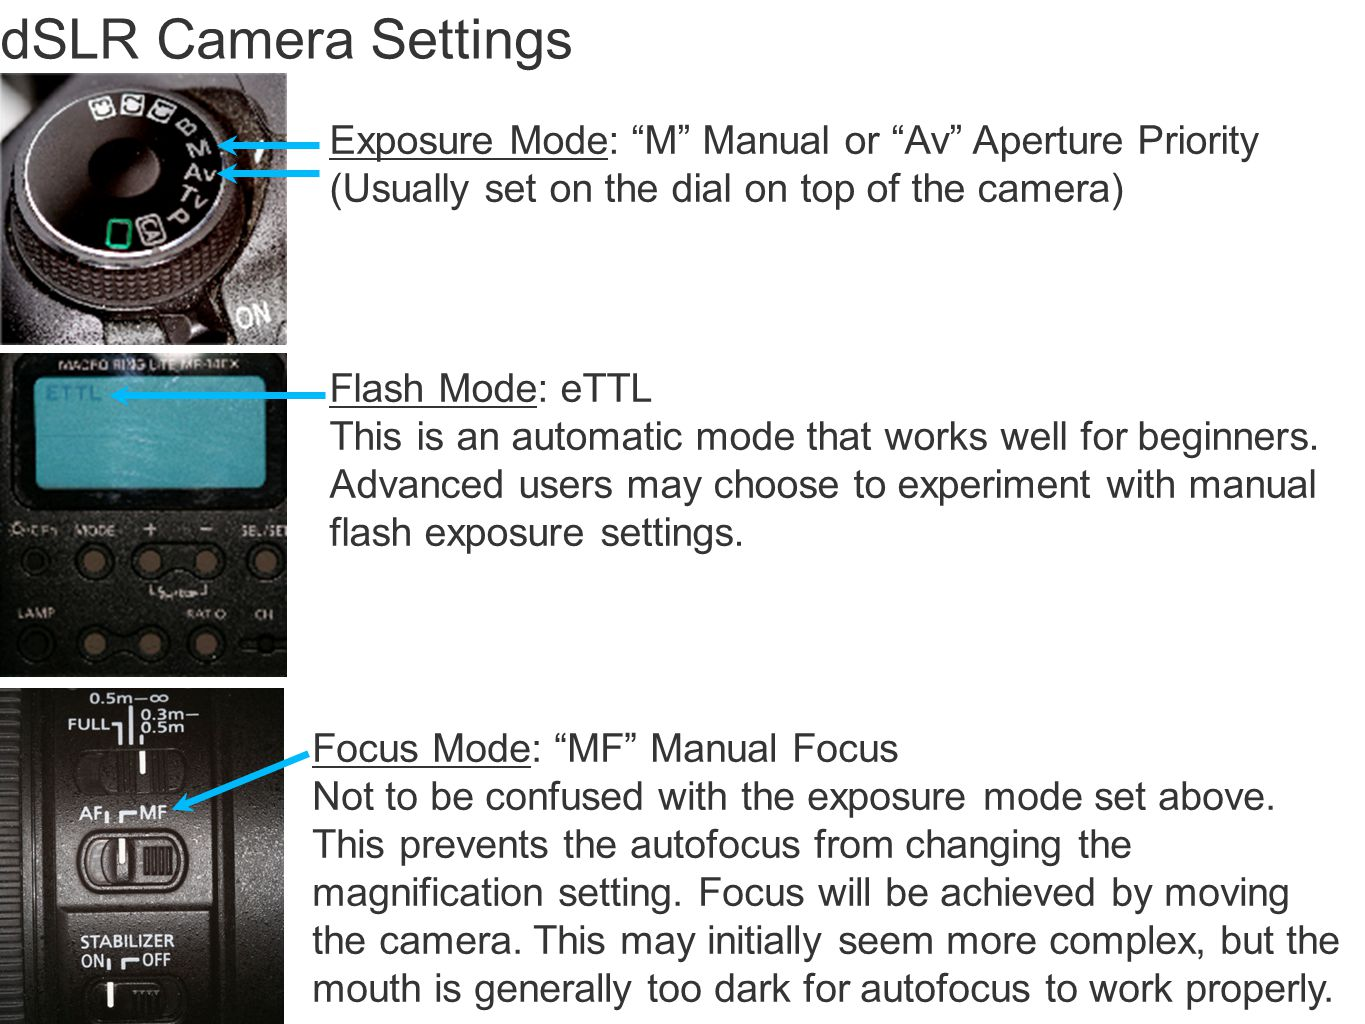 dSLR Camera Settings Exposure Mode: M Manual or Av Aperture Priority. (Usually set on the dial on top of the camera)